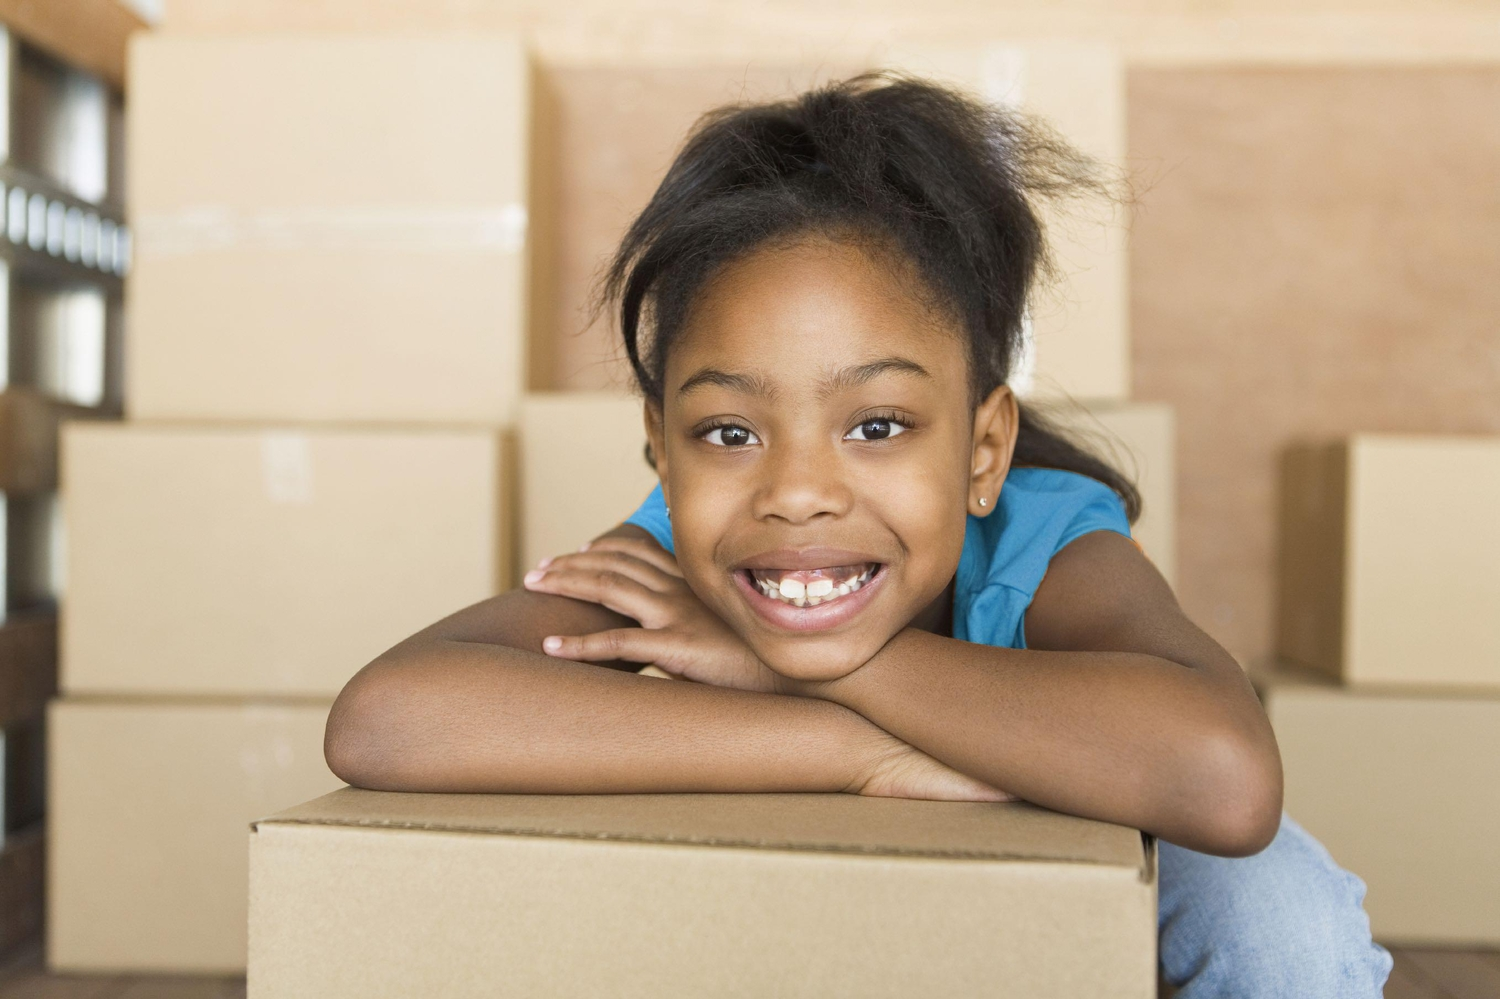 Young girl smiling and leaning on moving box in a room full of boxes